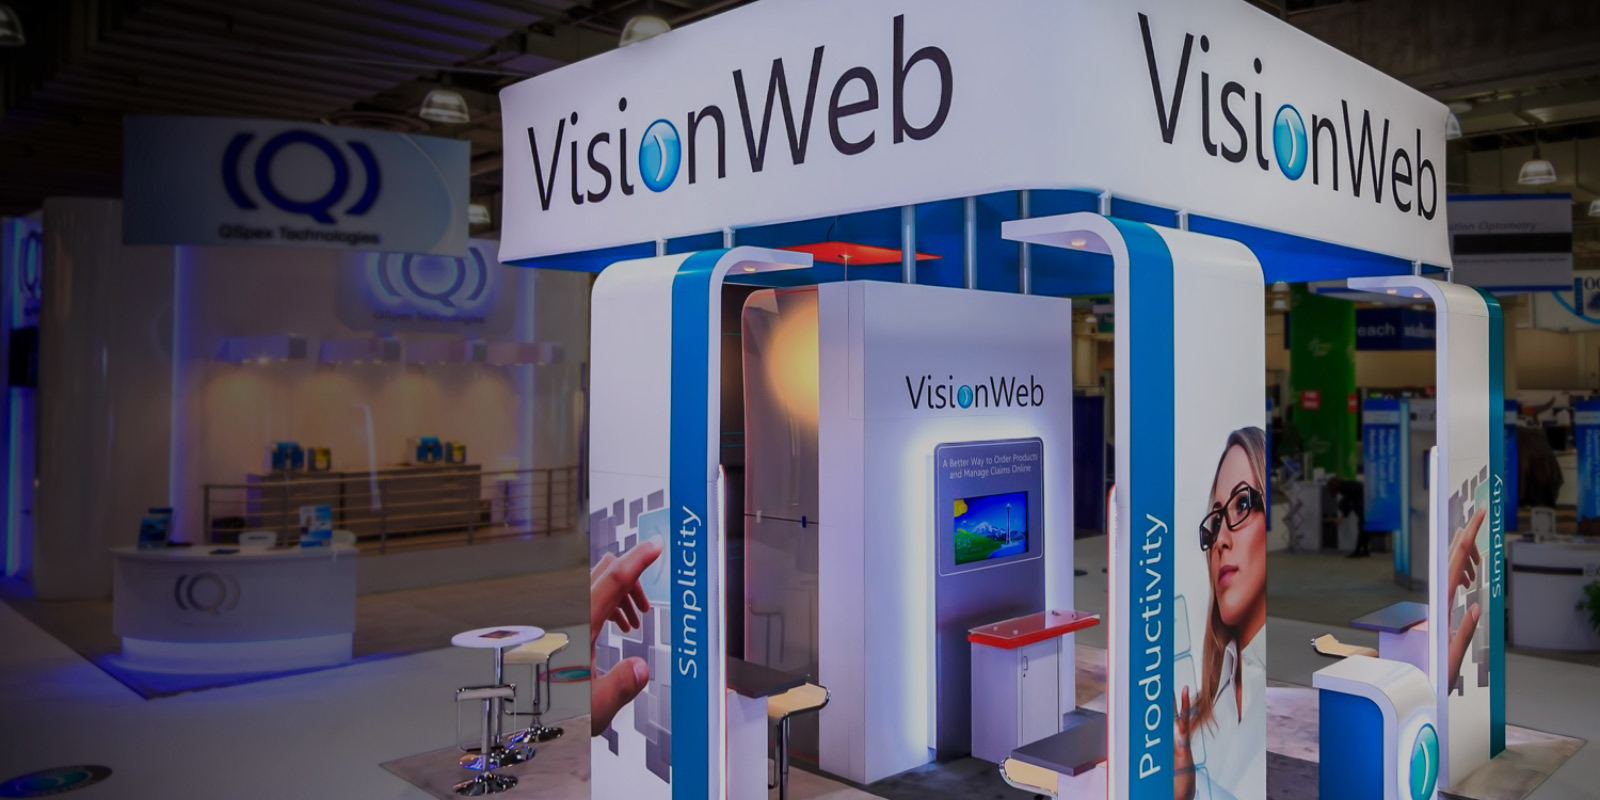 Custom Exhibit Branded Environment Design for VisionWeb